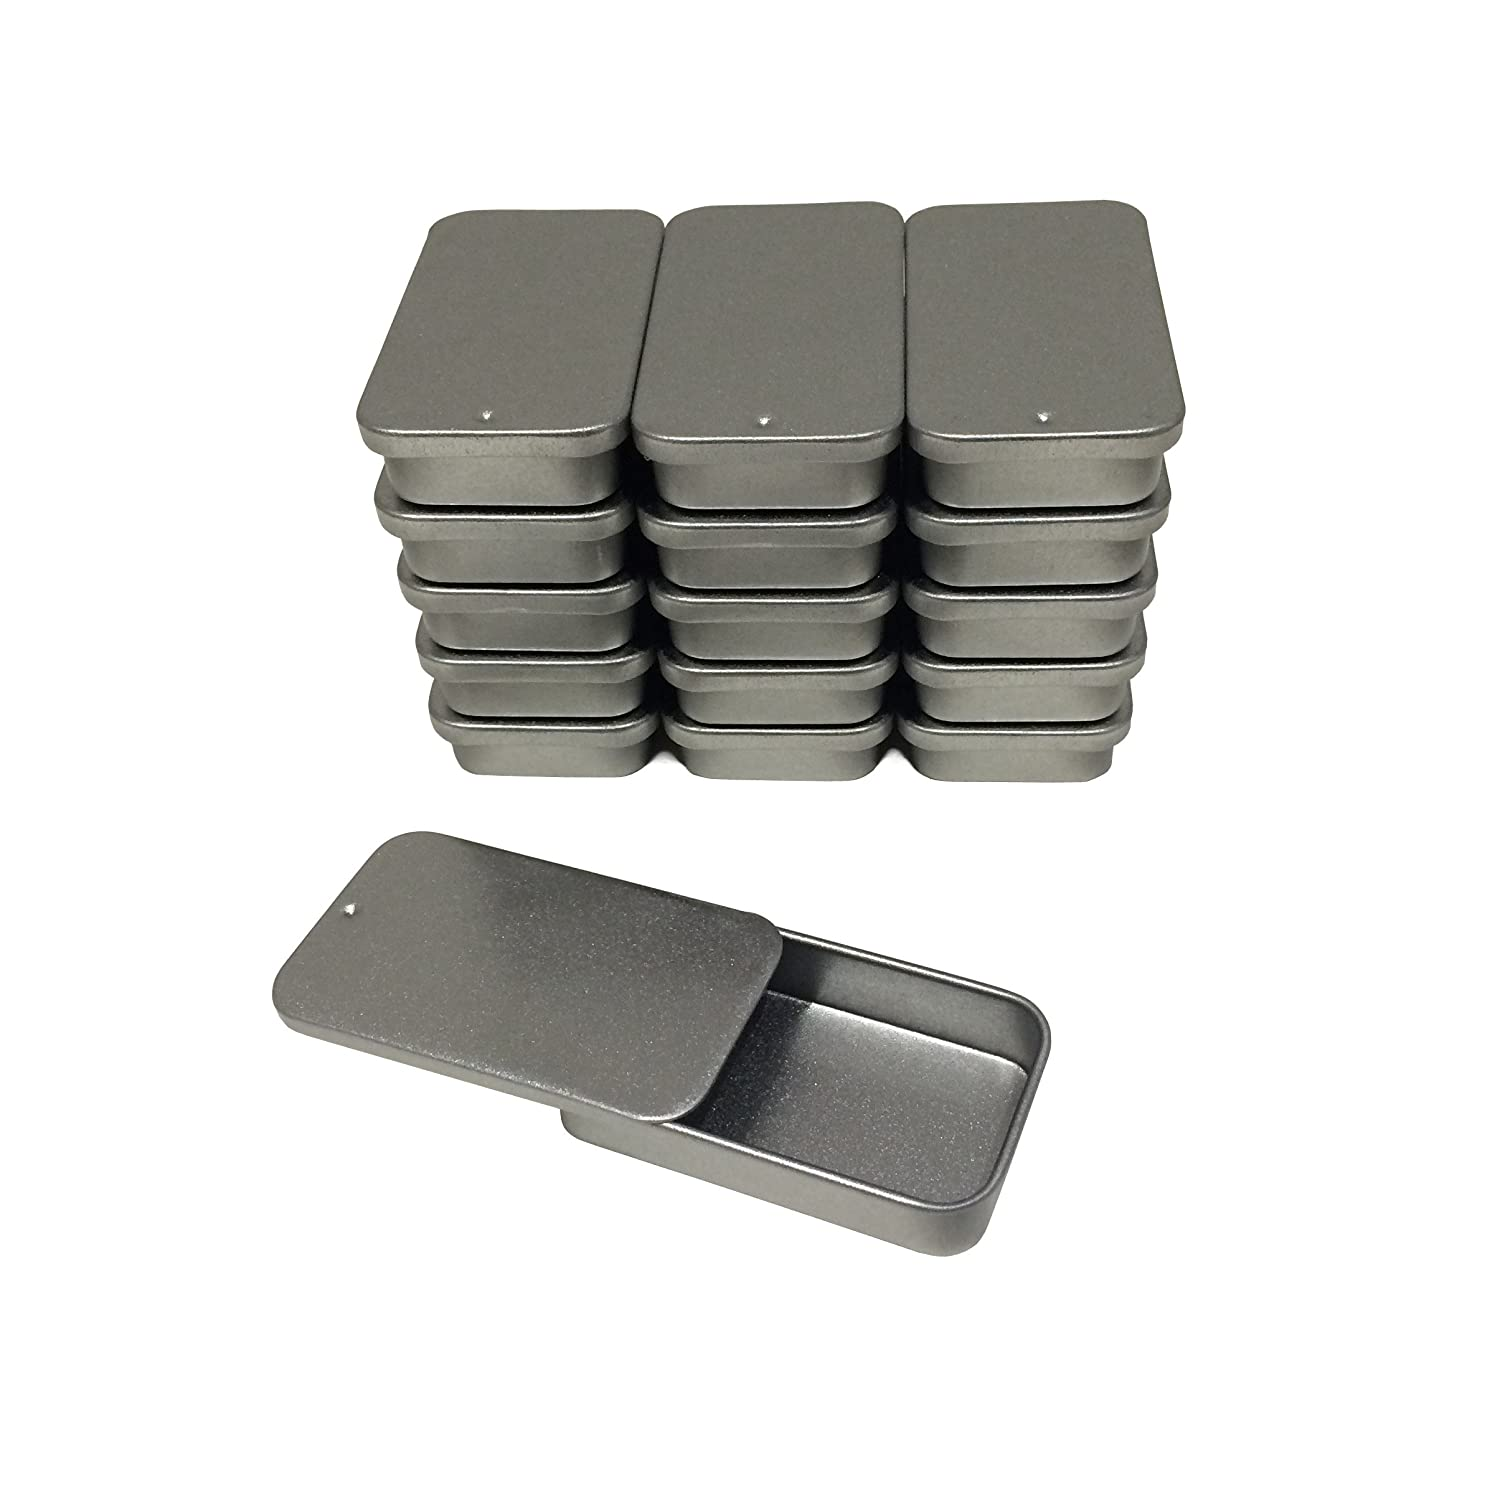 Cubic Ape Slide Top Tin Containers for Cosmetics, Lip Balm - Travel Storage - Small - 0.5 fl oz. (Pack of 16)